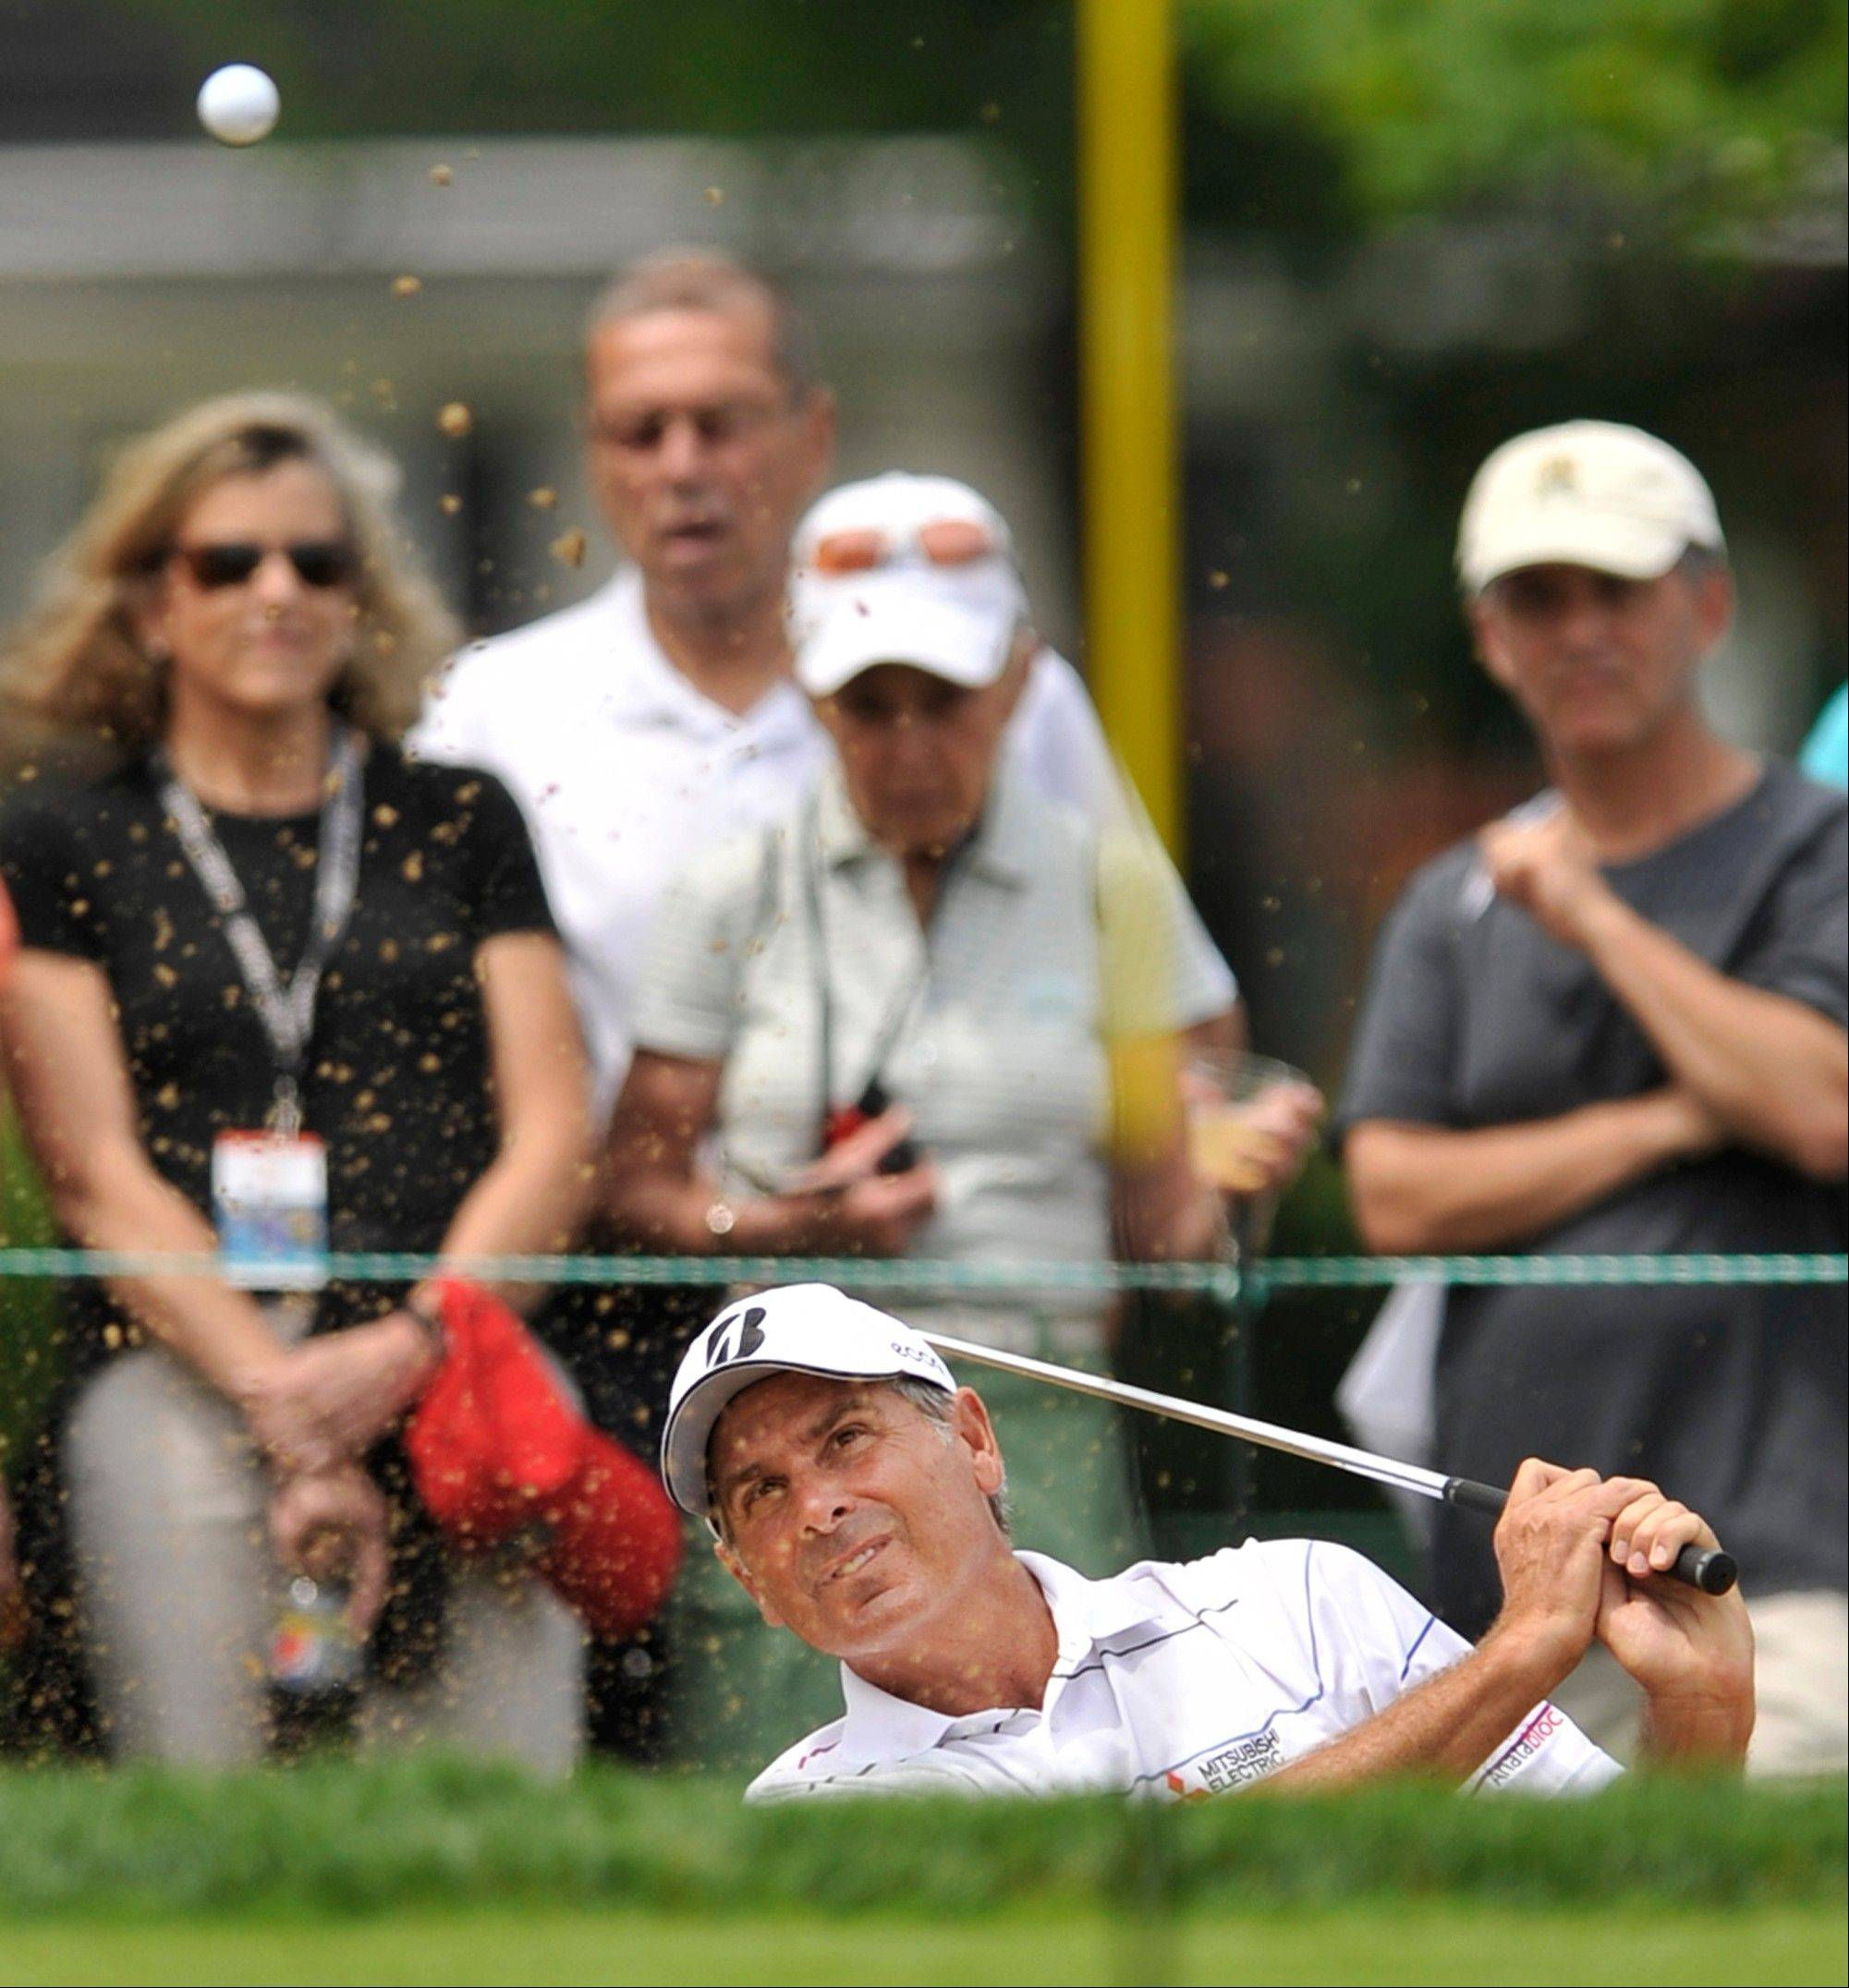 Fred Couples hits out of a bunker on the 12th hole during the second round of the Encompass Championship at North Shore County Club in Glenview on Saturday.